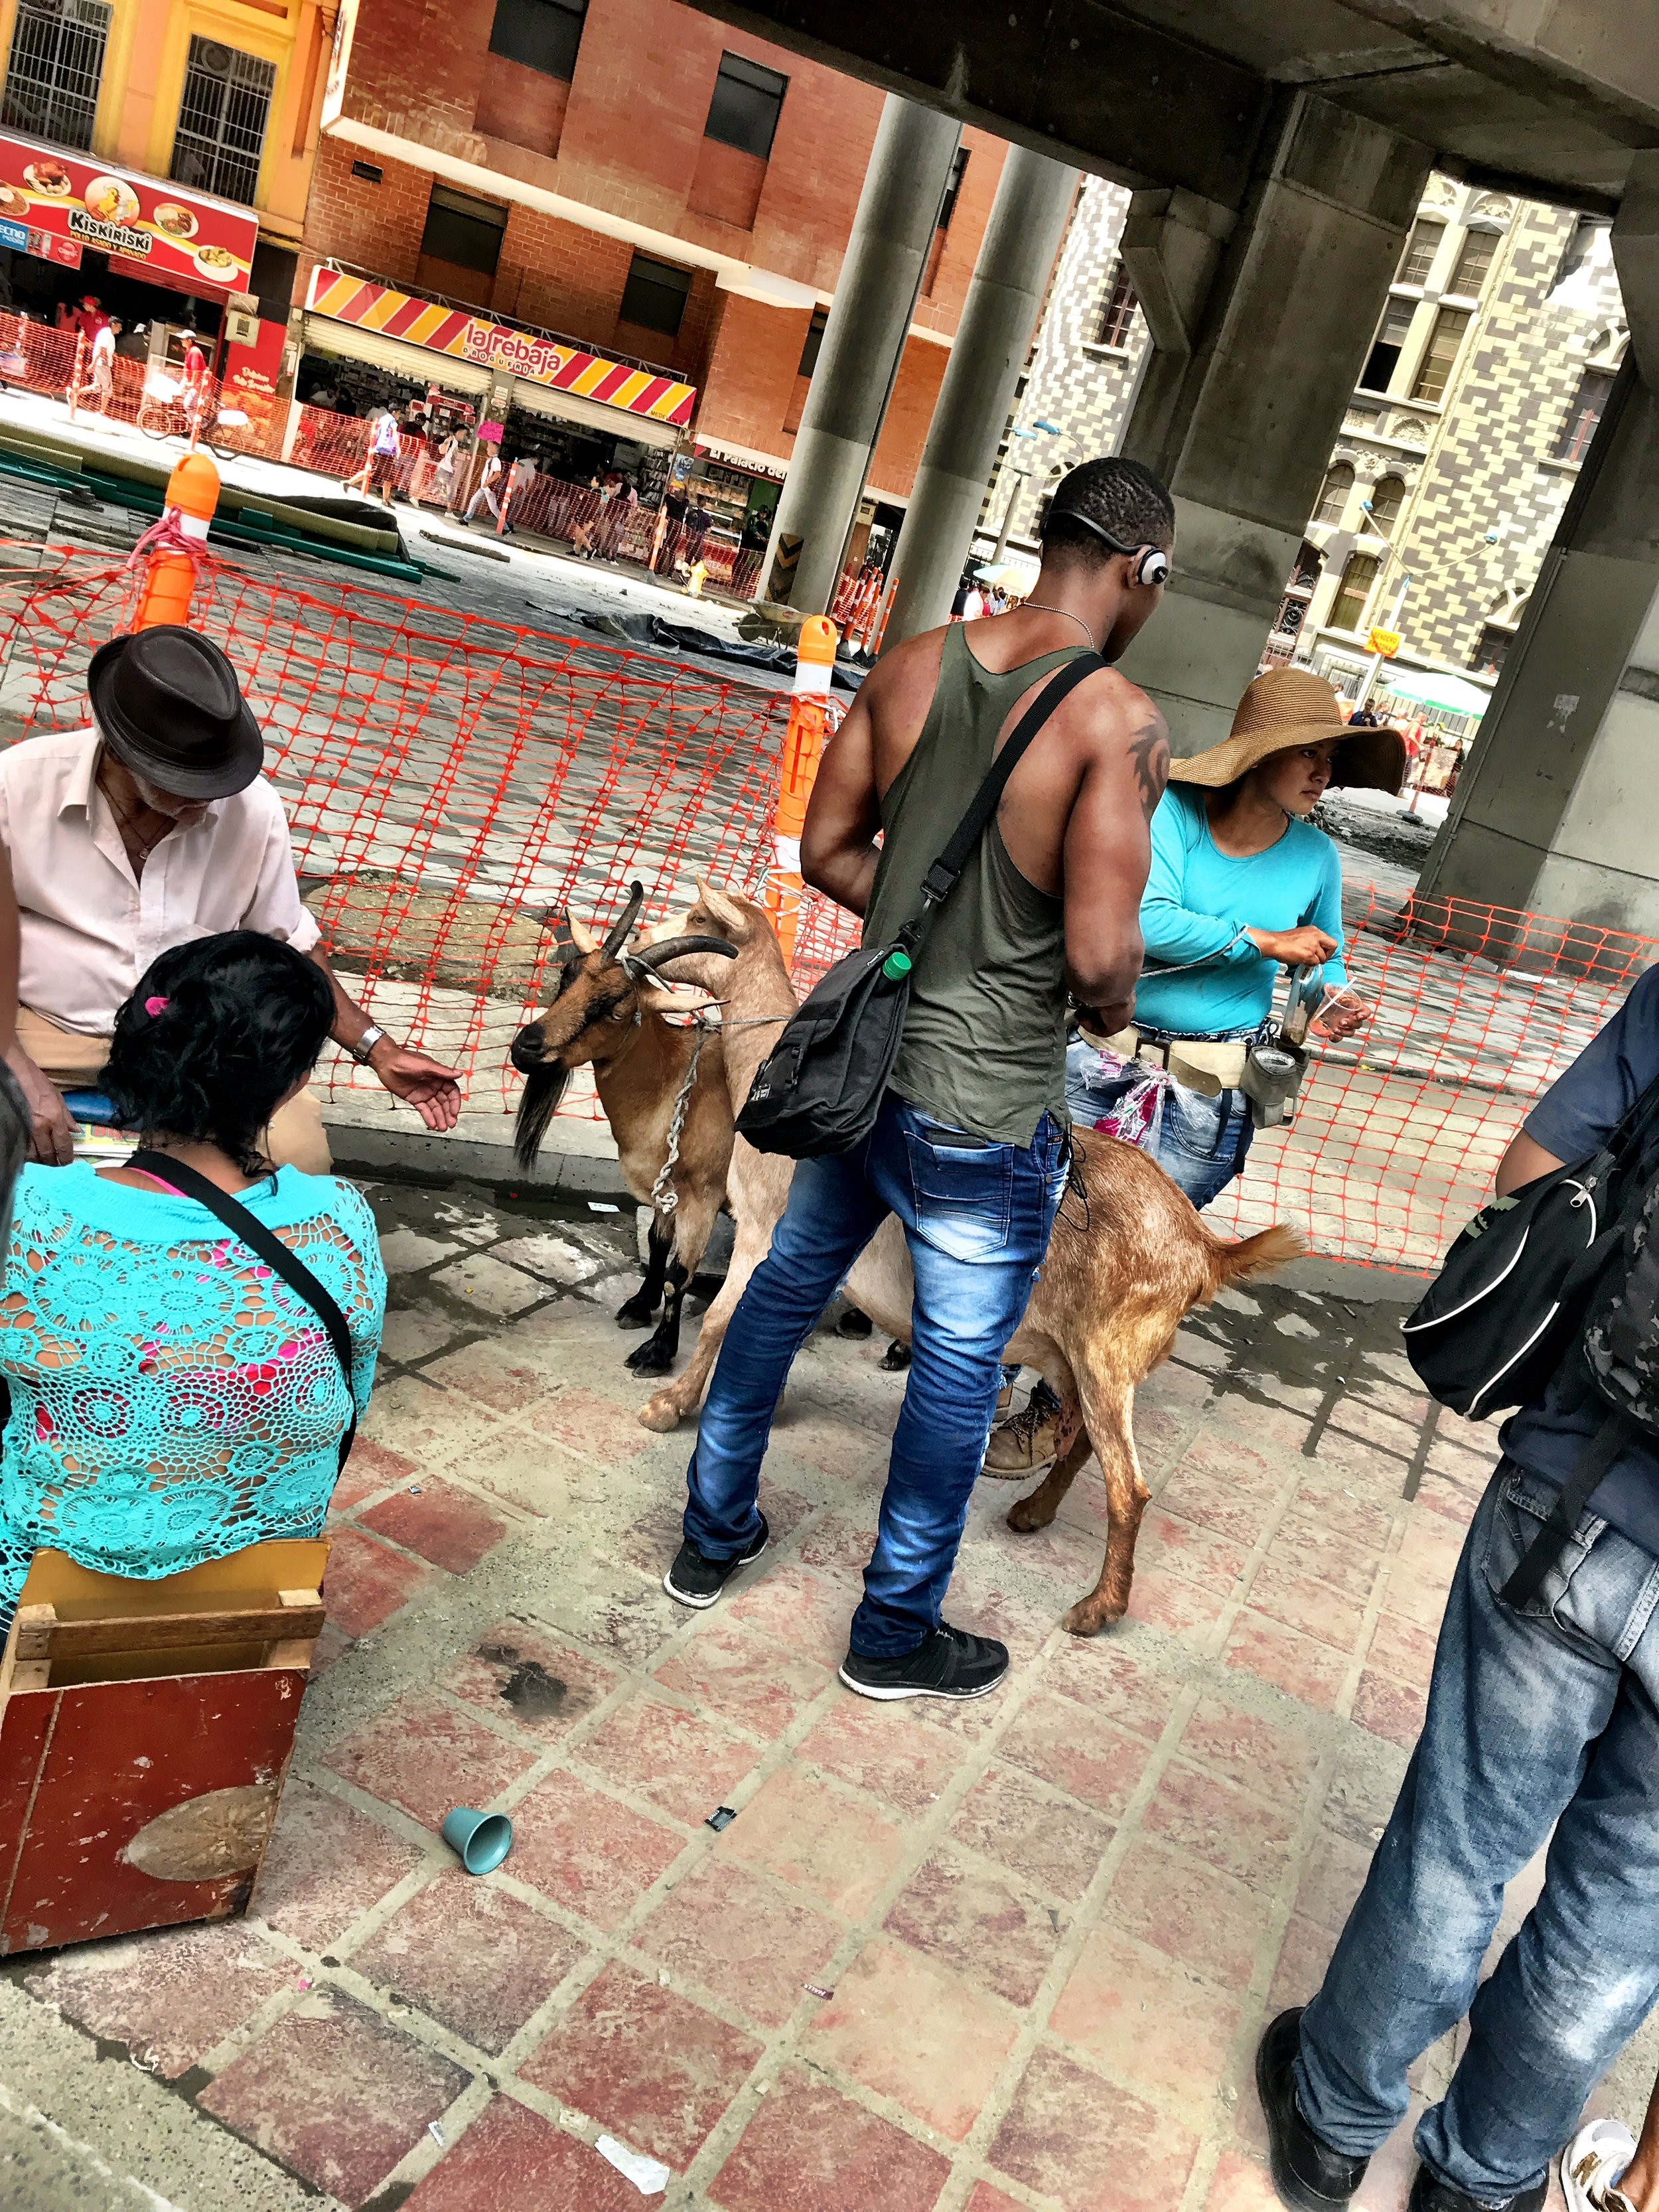 Fresh Milk - Get some fresh squeezed goat milk in town square. Wonder if this would fly in Vegas?